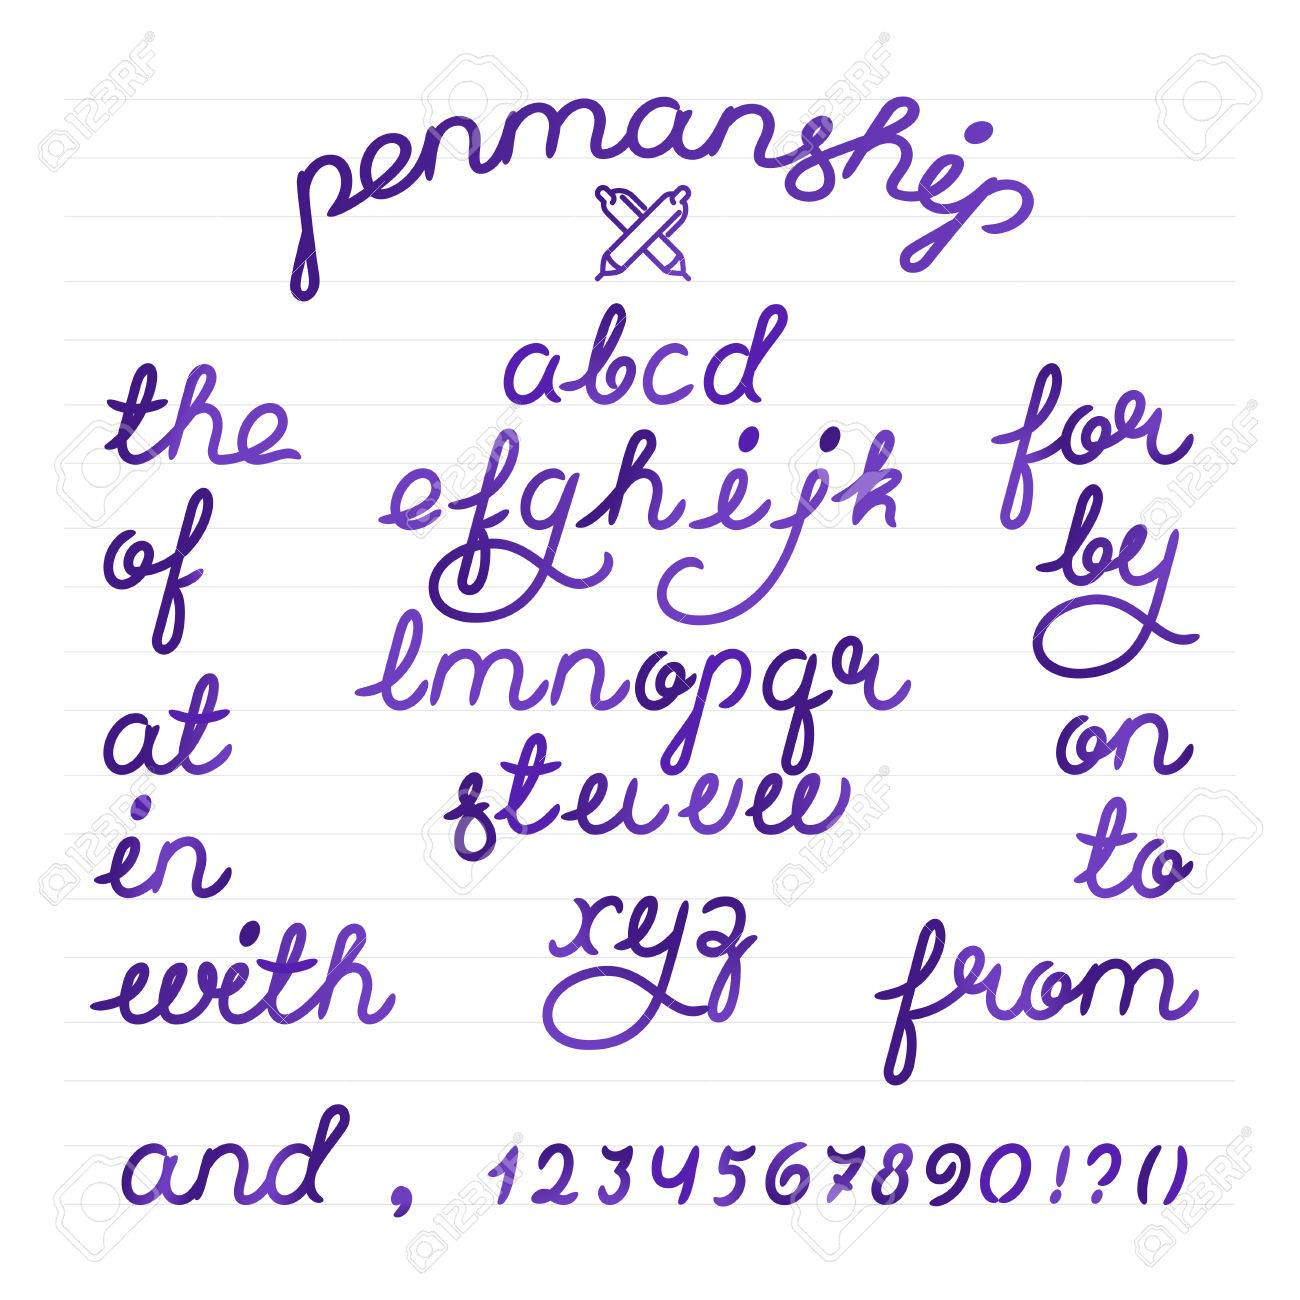 penmanship alphabet font letters and digits. Brush script letters and catchwords the, and,